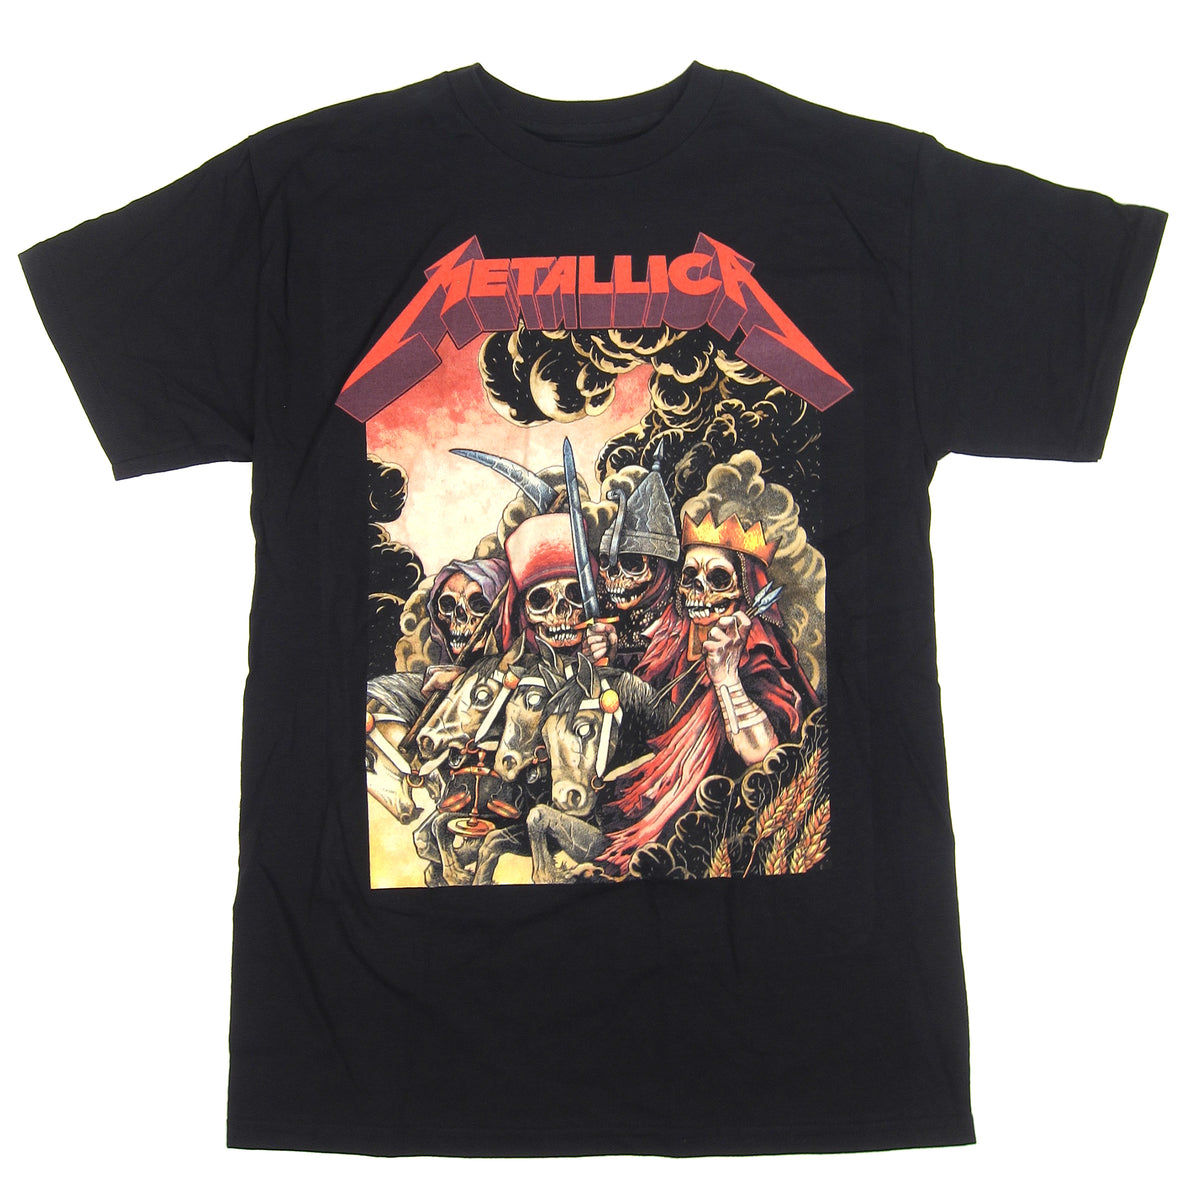 Metallica: The Four Horsemen Shirt - Black